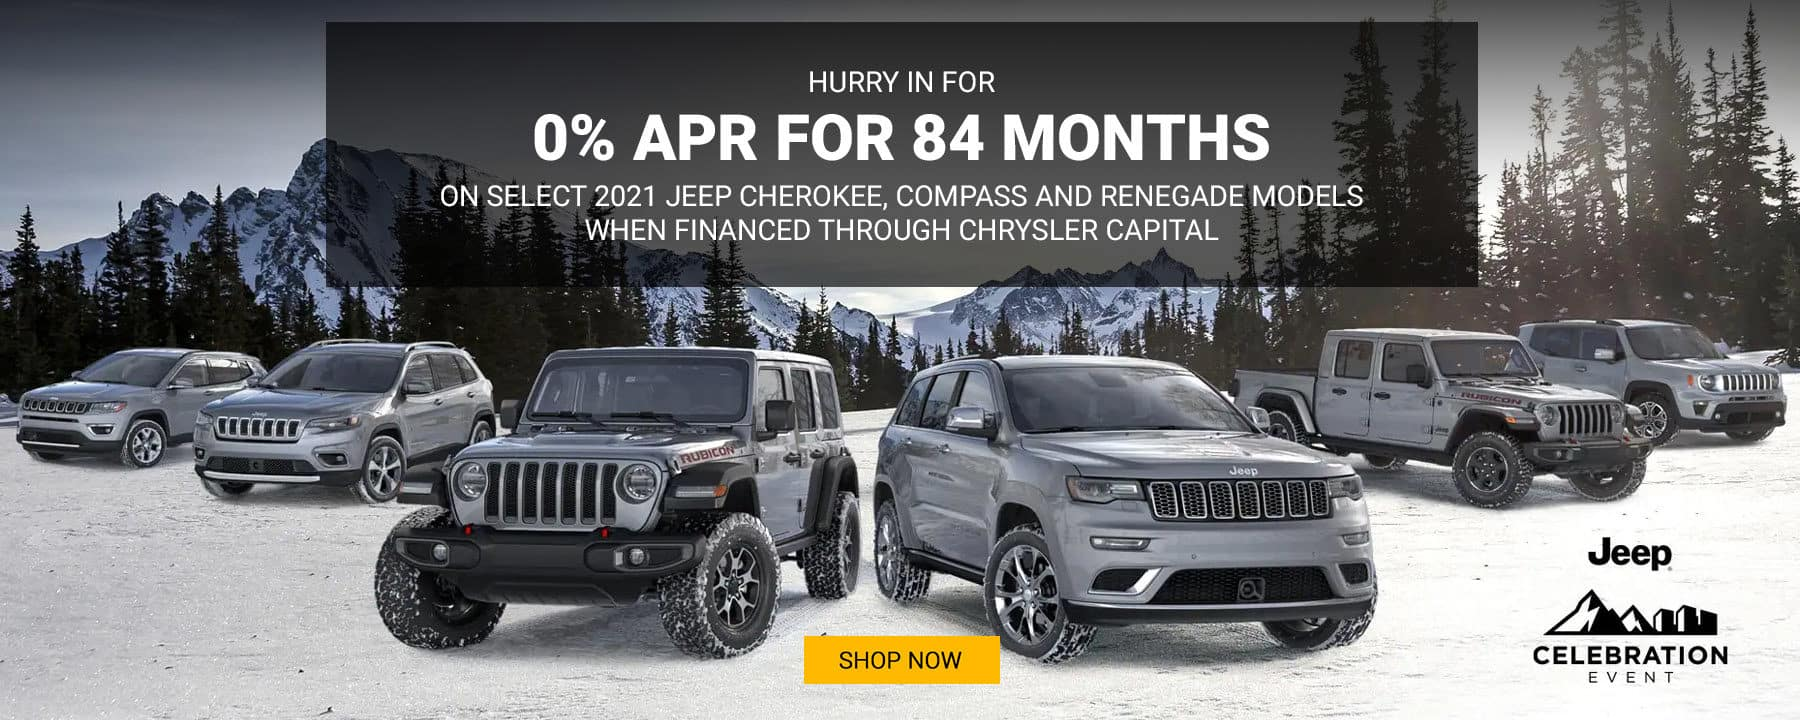 Hurry in for 0% APR for 84 months on select 2021 Jeep Cherokee, Compass and Renegade models.